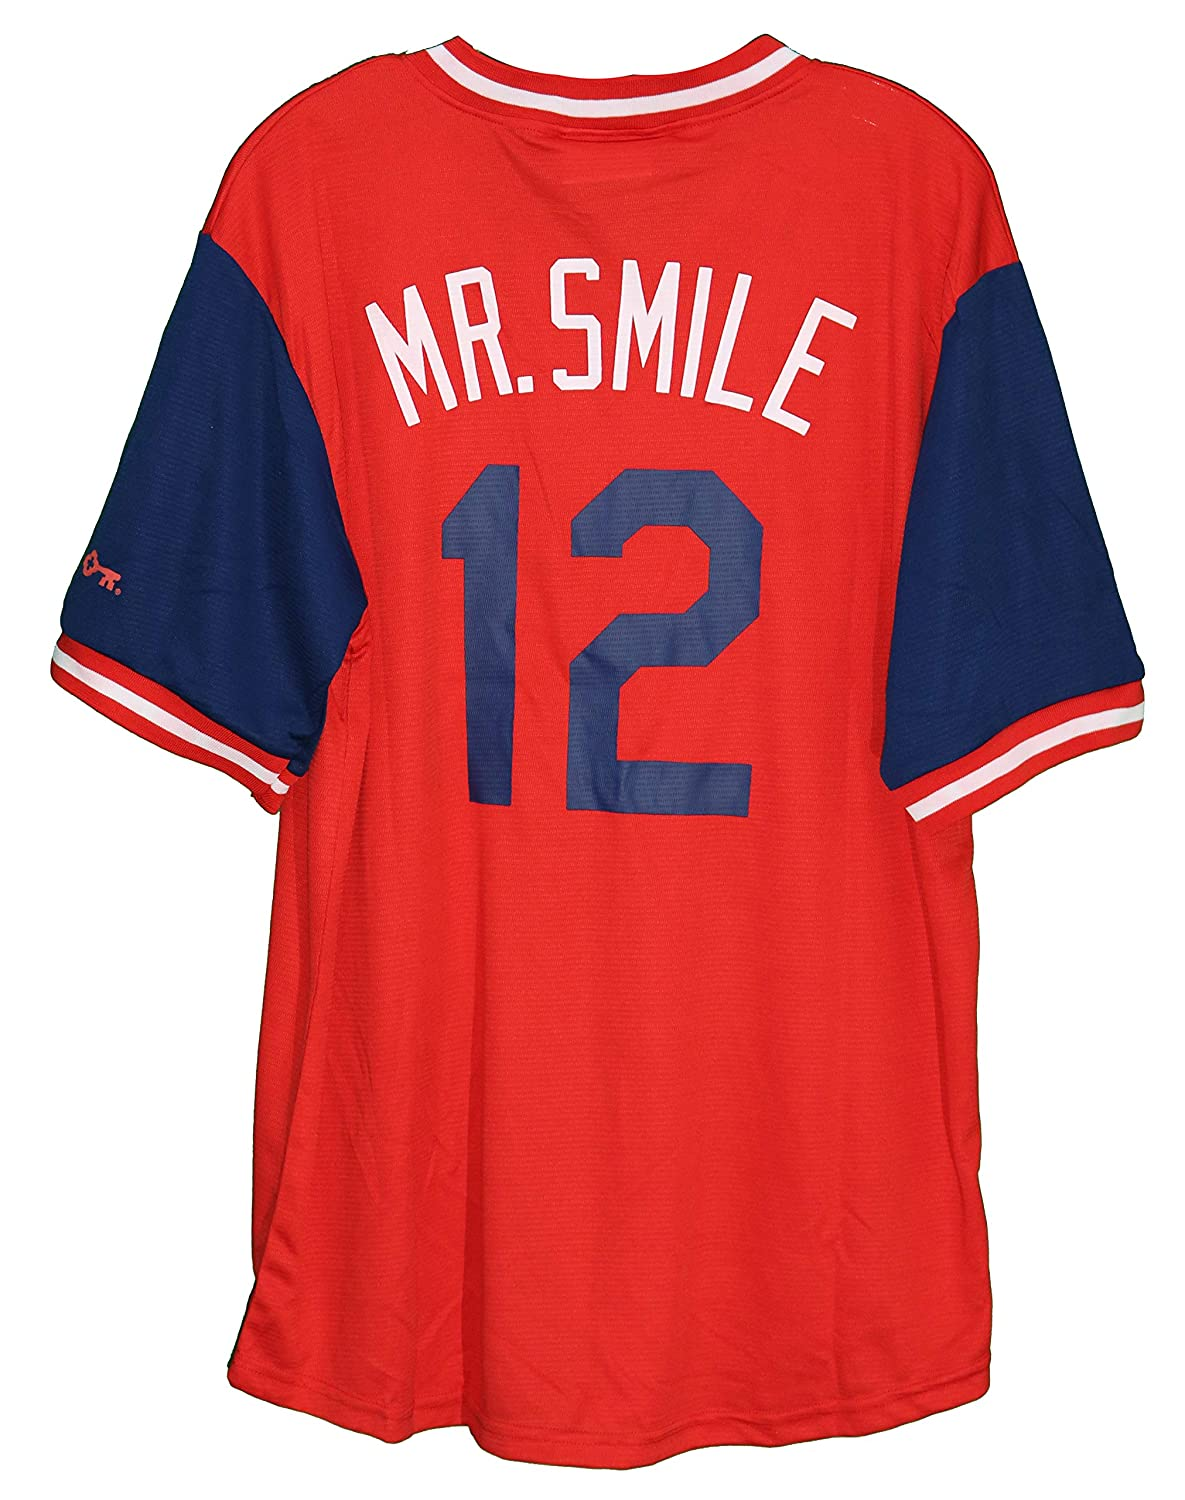 new concept f331c 3331f Francisco Lindor Cleveland Indians Red Mr. Smile #12 Jersey ...